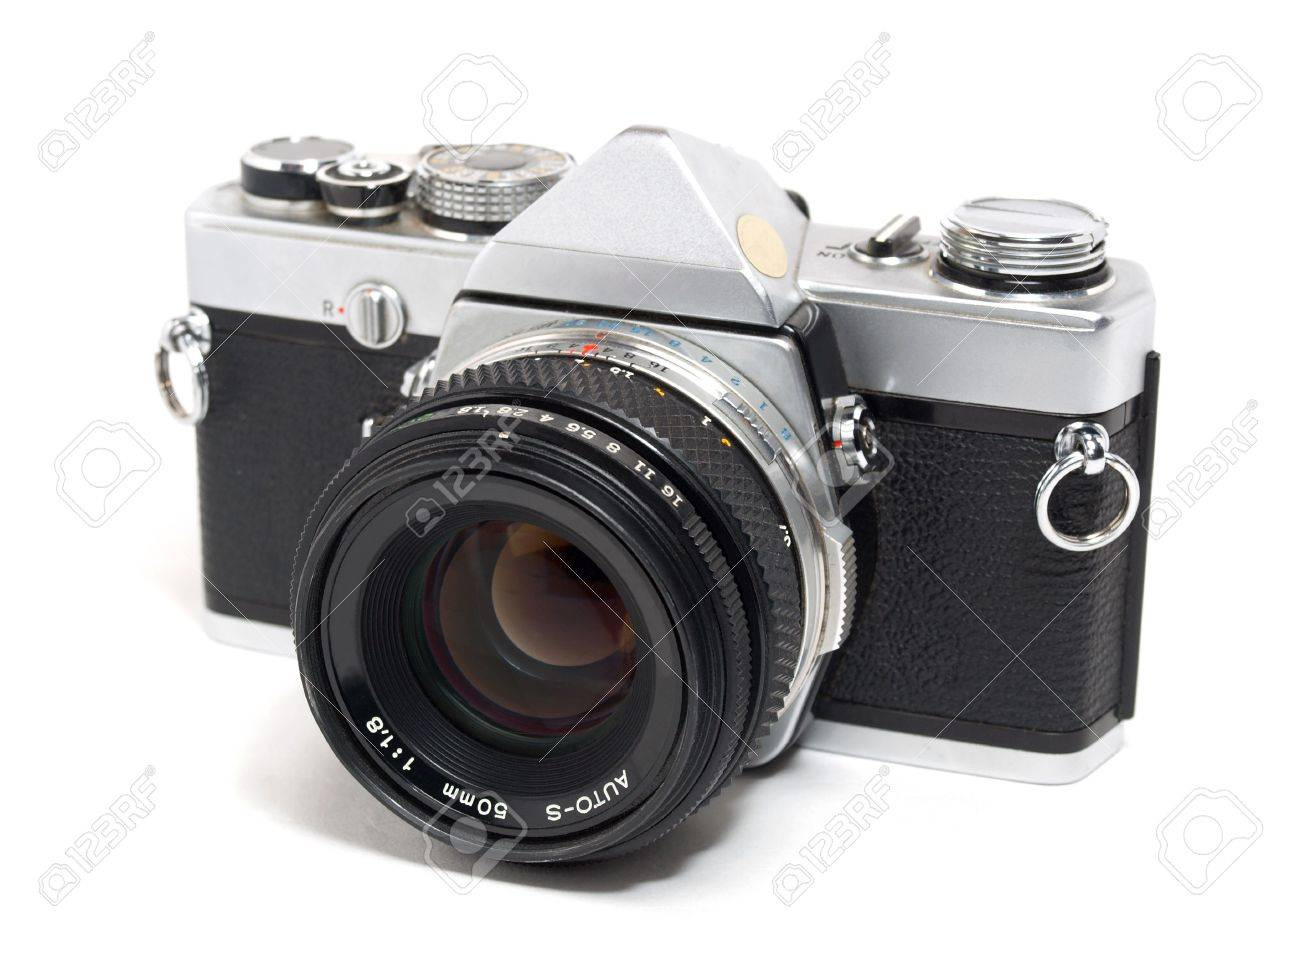 Color Photo Of An Old Film Lens Reflex Cameras. An Isolated Object ...